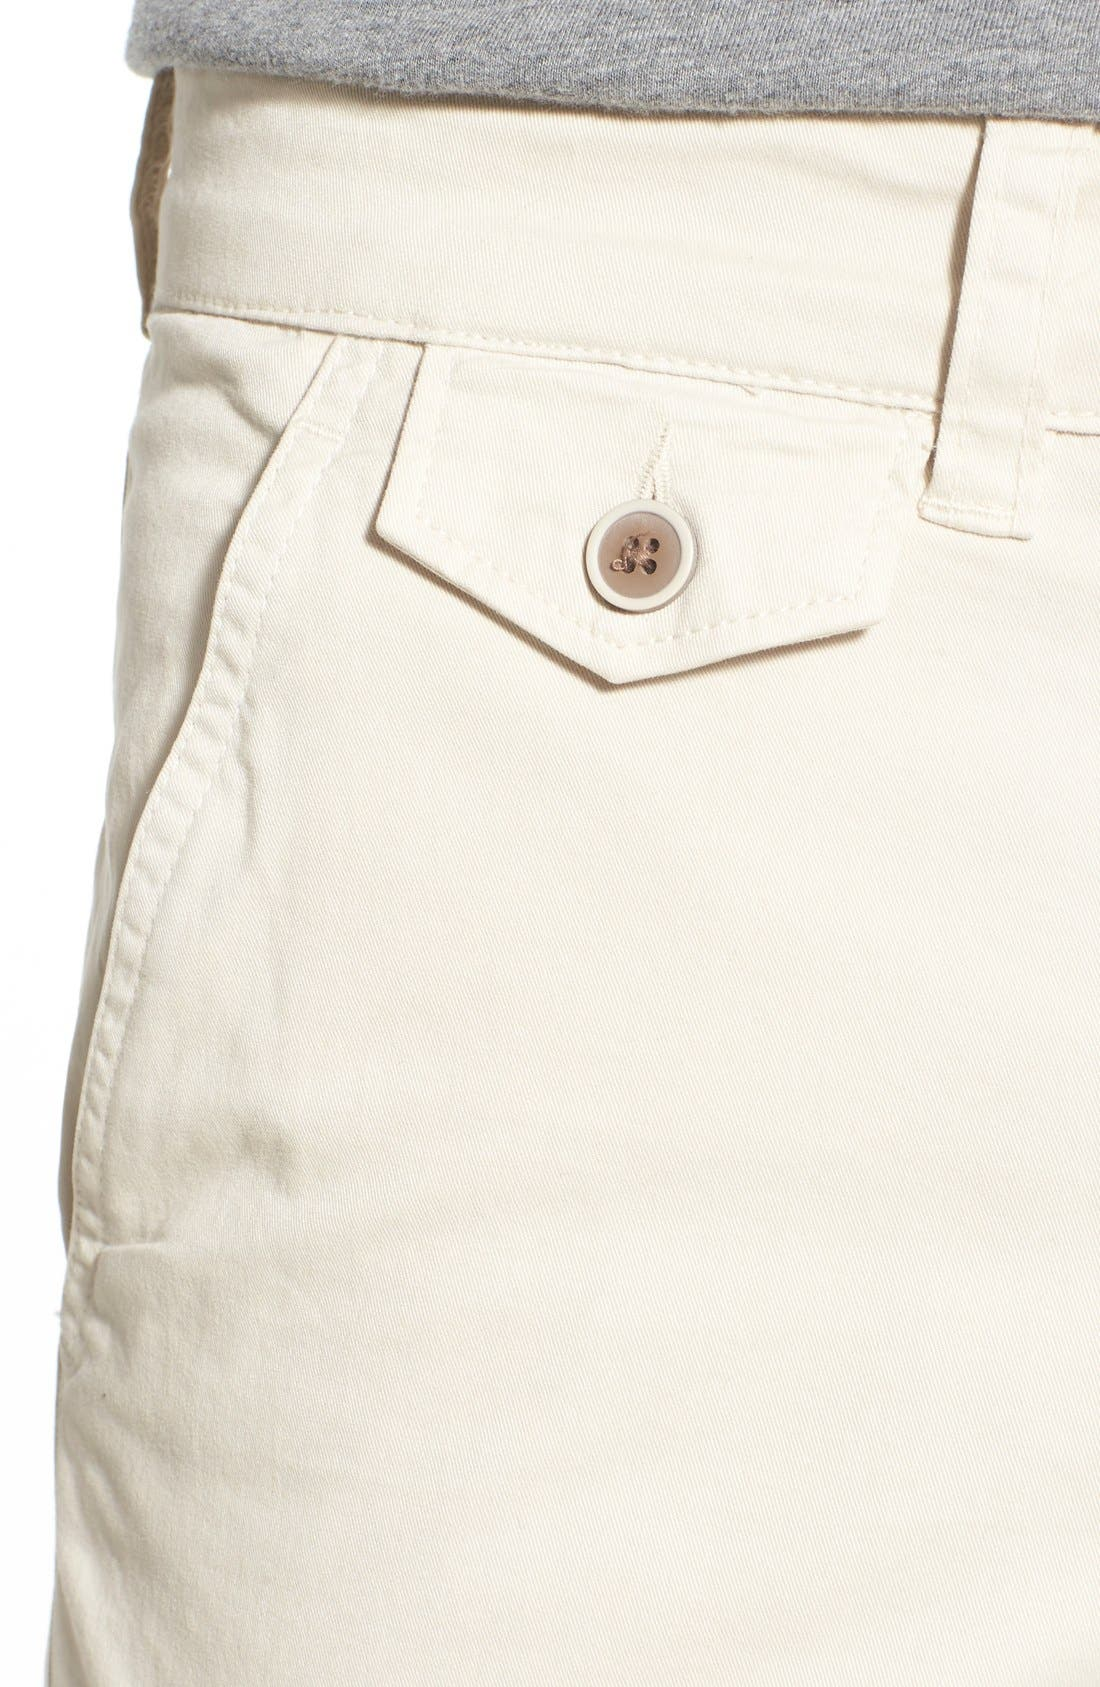 'Sunny' Stretch Chino Shorts,                             Alternate thumbnail 20, color,